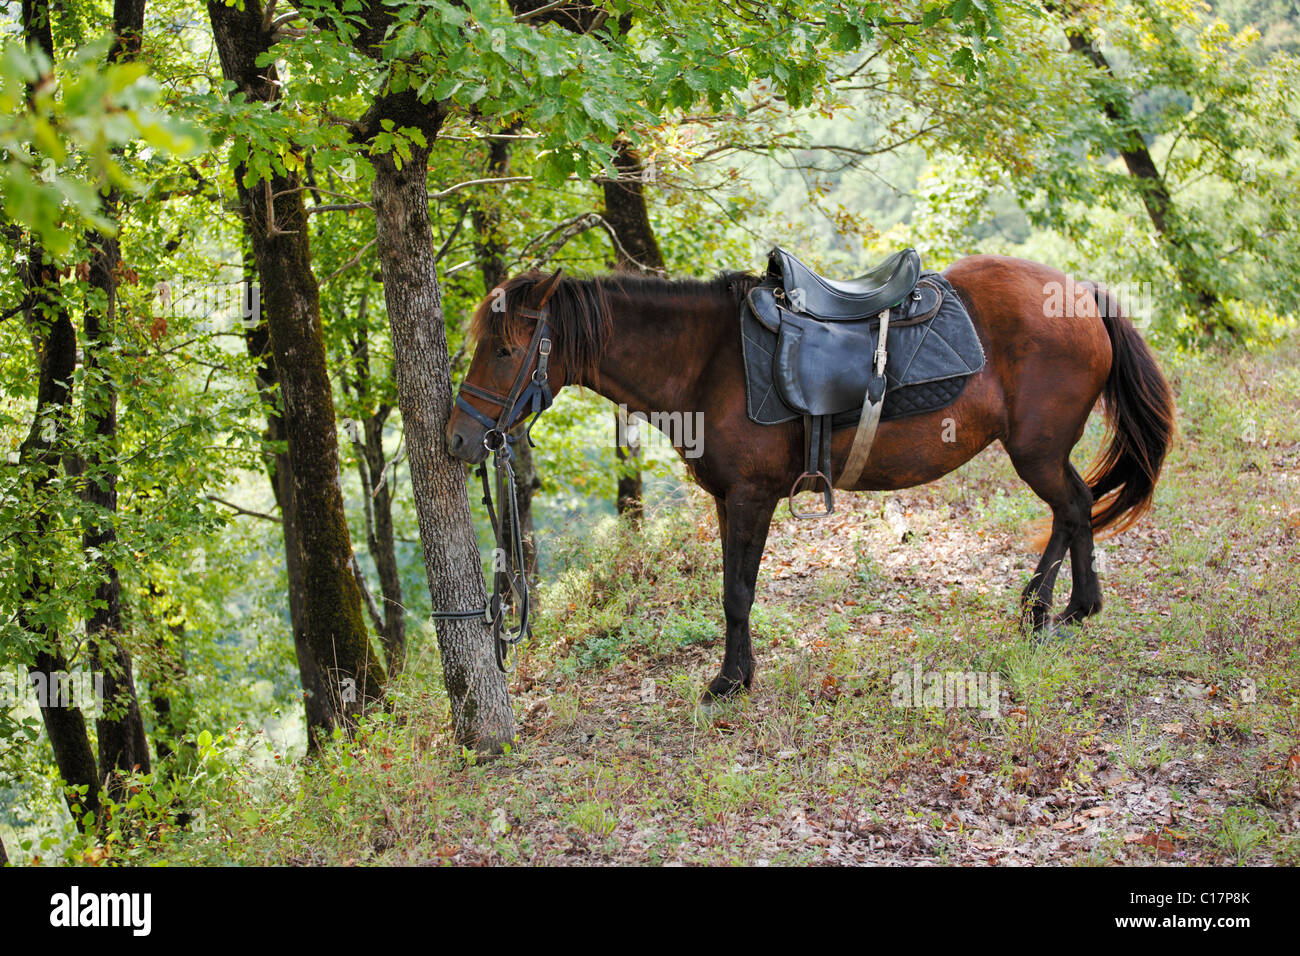 Bay horse resting in forest - Stock Image